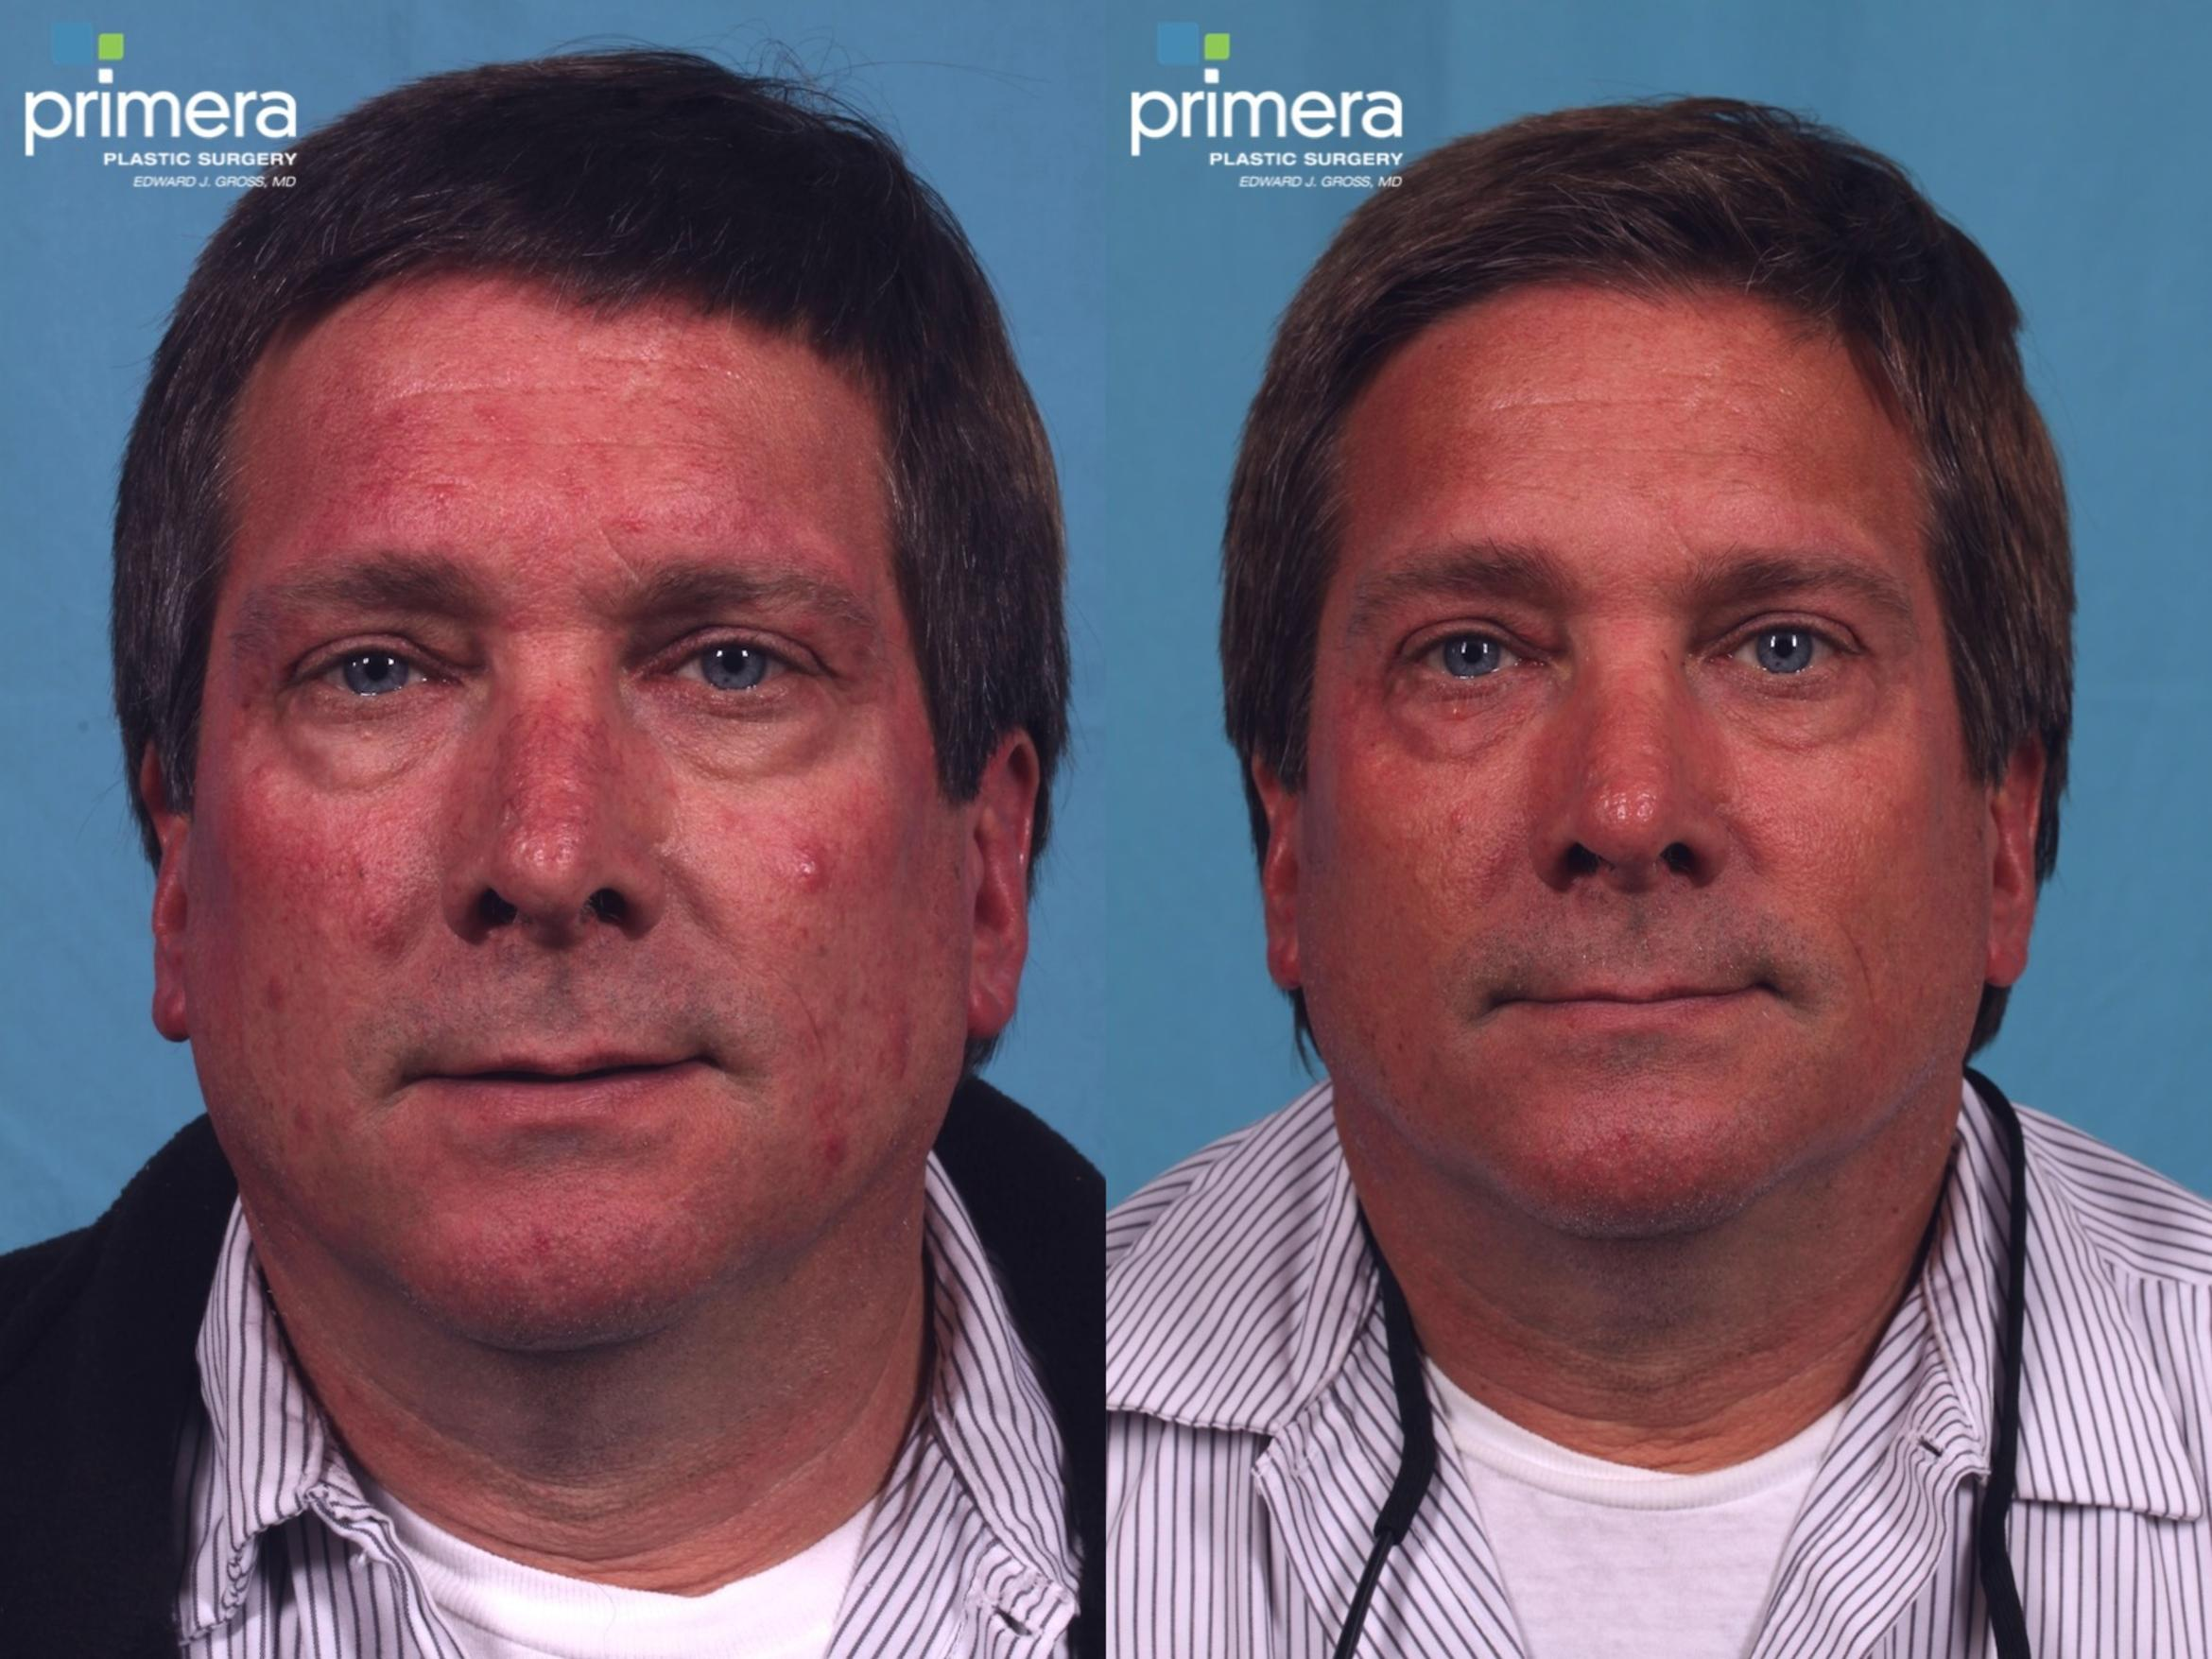 Pulsed Dye Laser (Candela V-Beam) Before & After Photo | Orlando, Florida | Primera Plastic Surgery